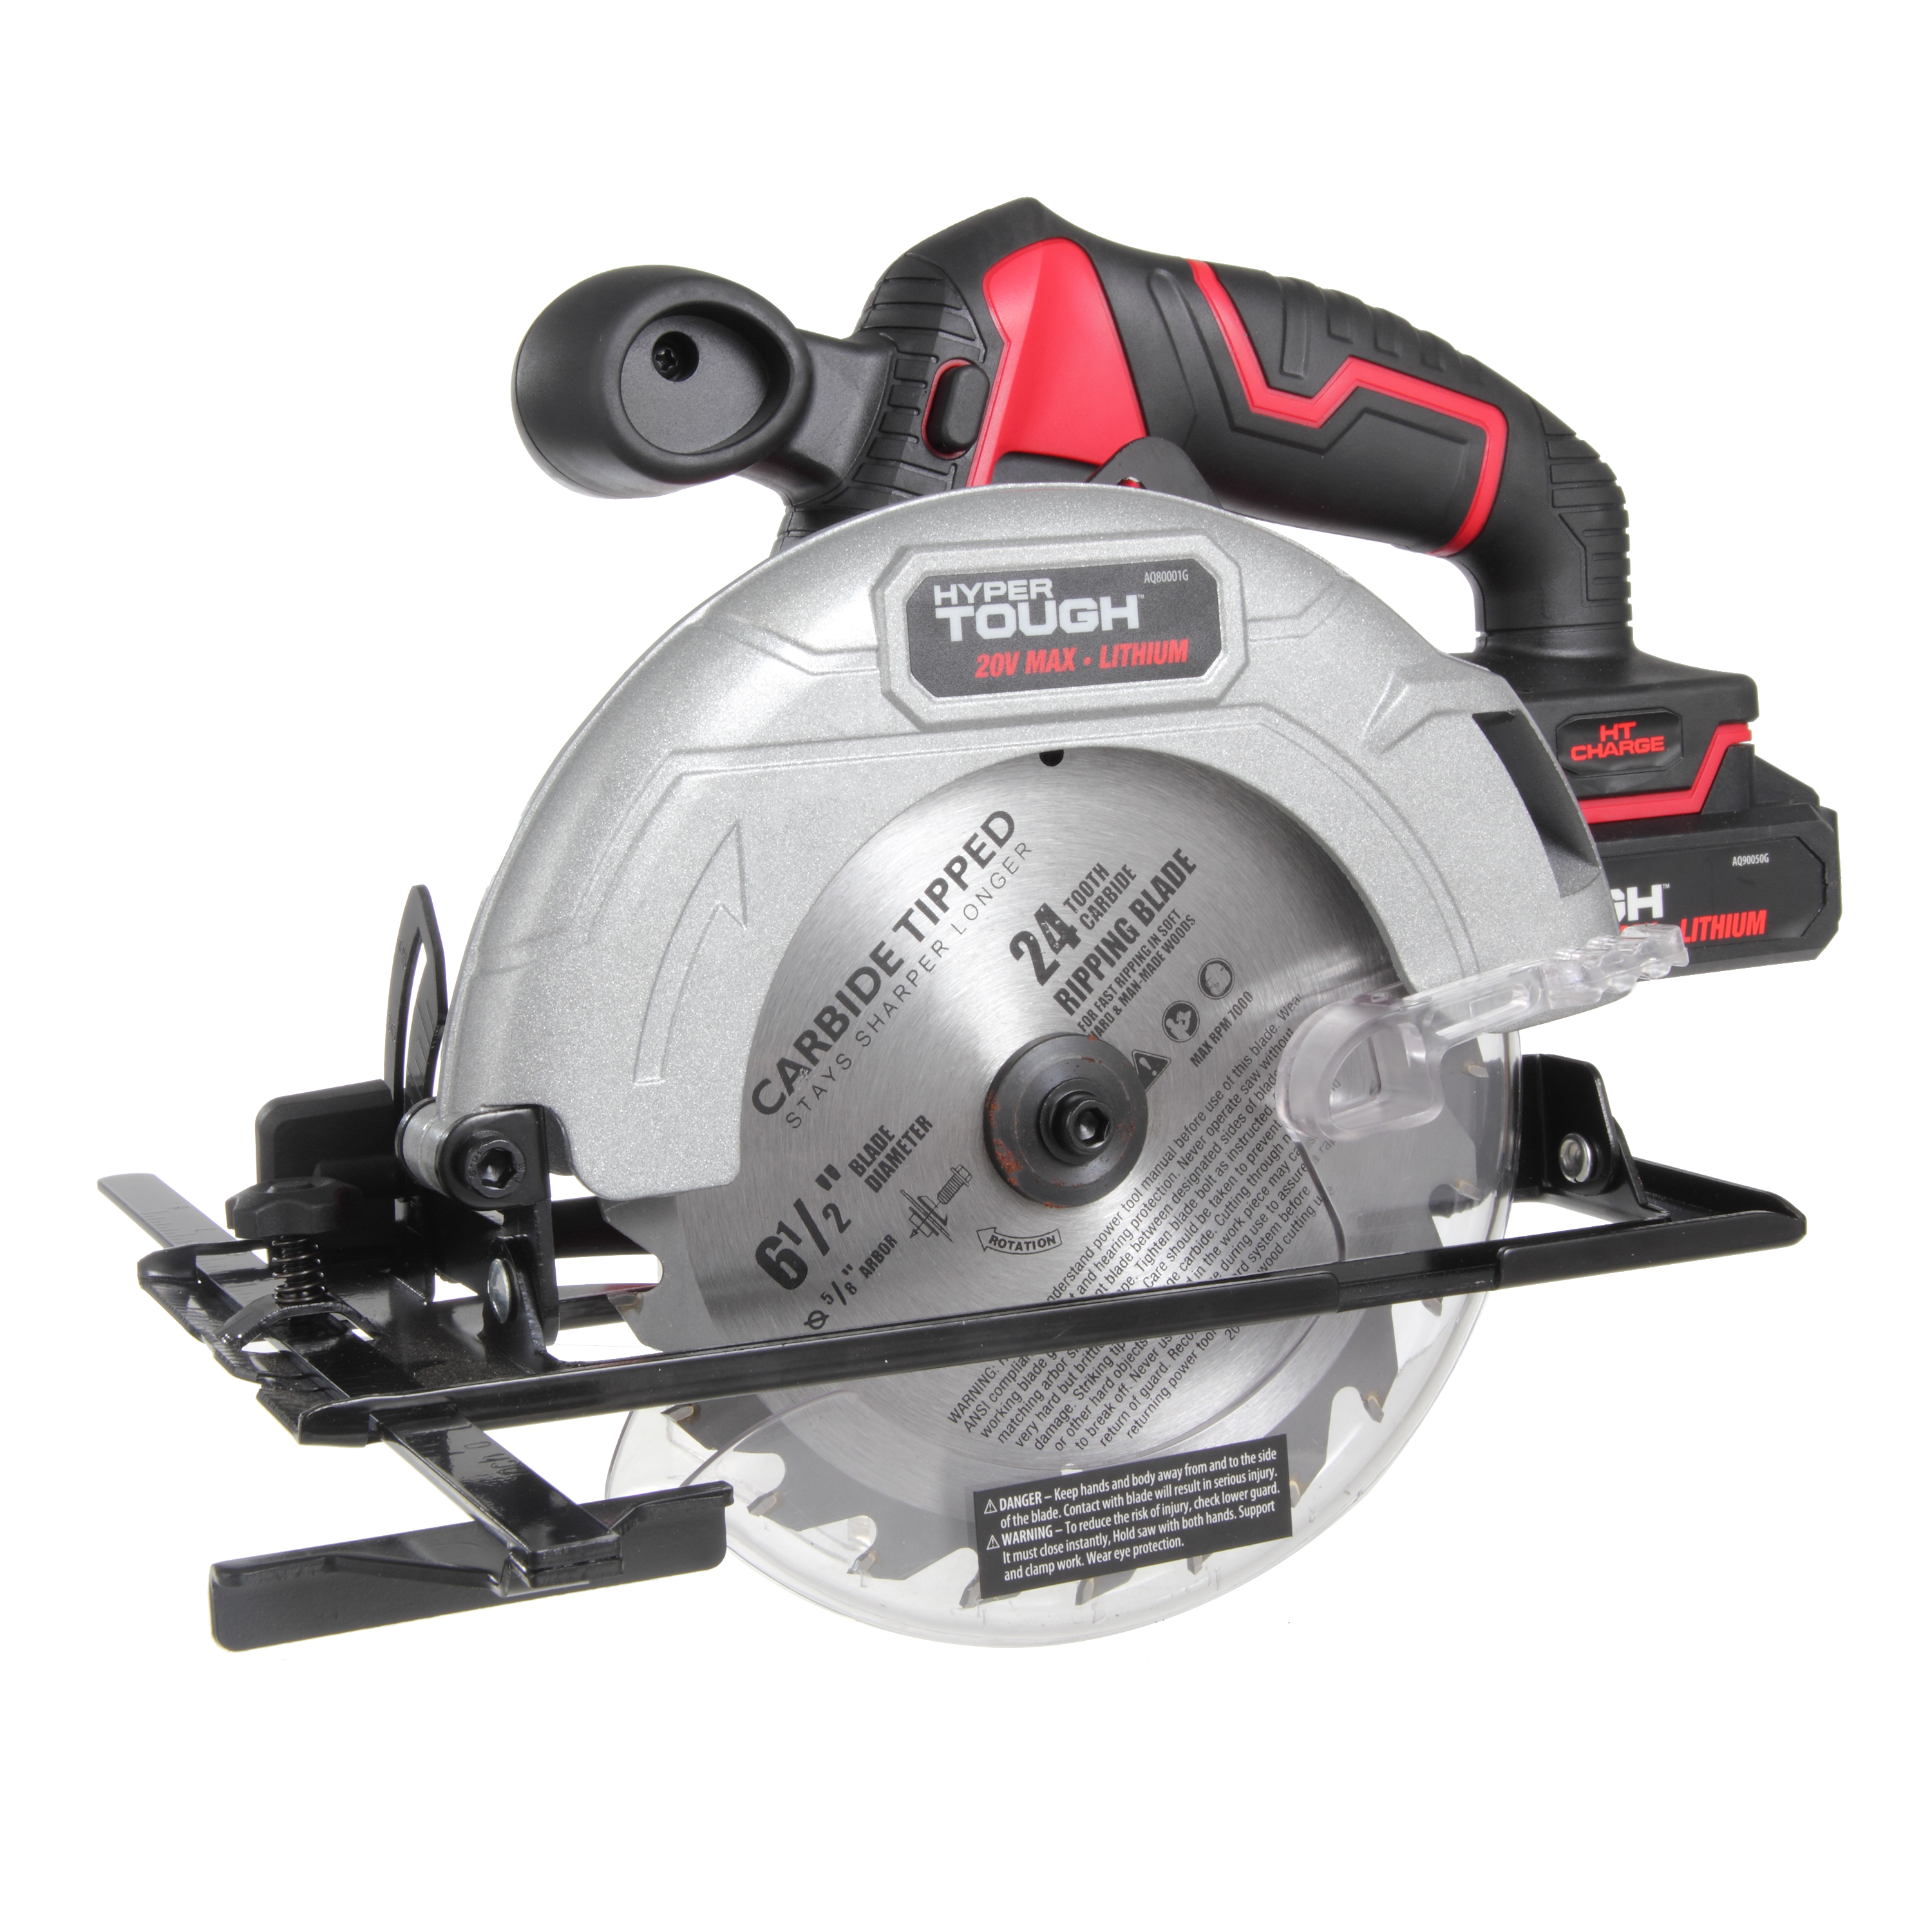 This saw is currently on sale for under $50 (Photo via Walmart)